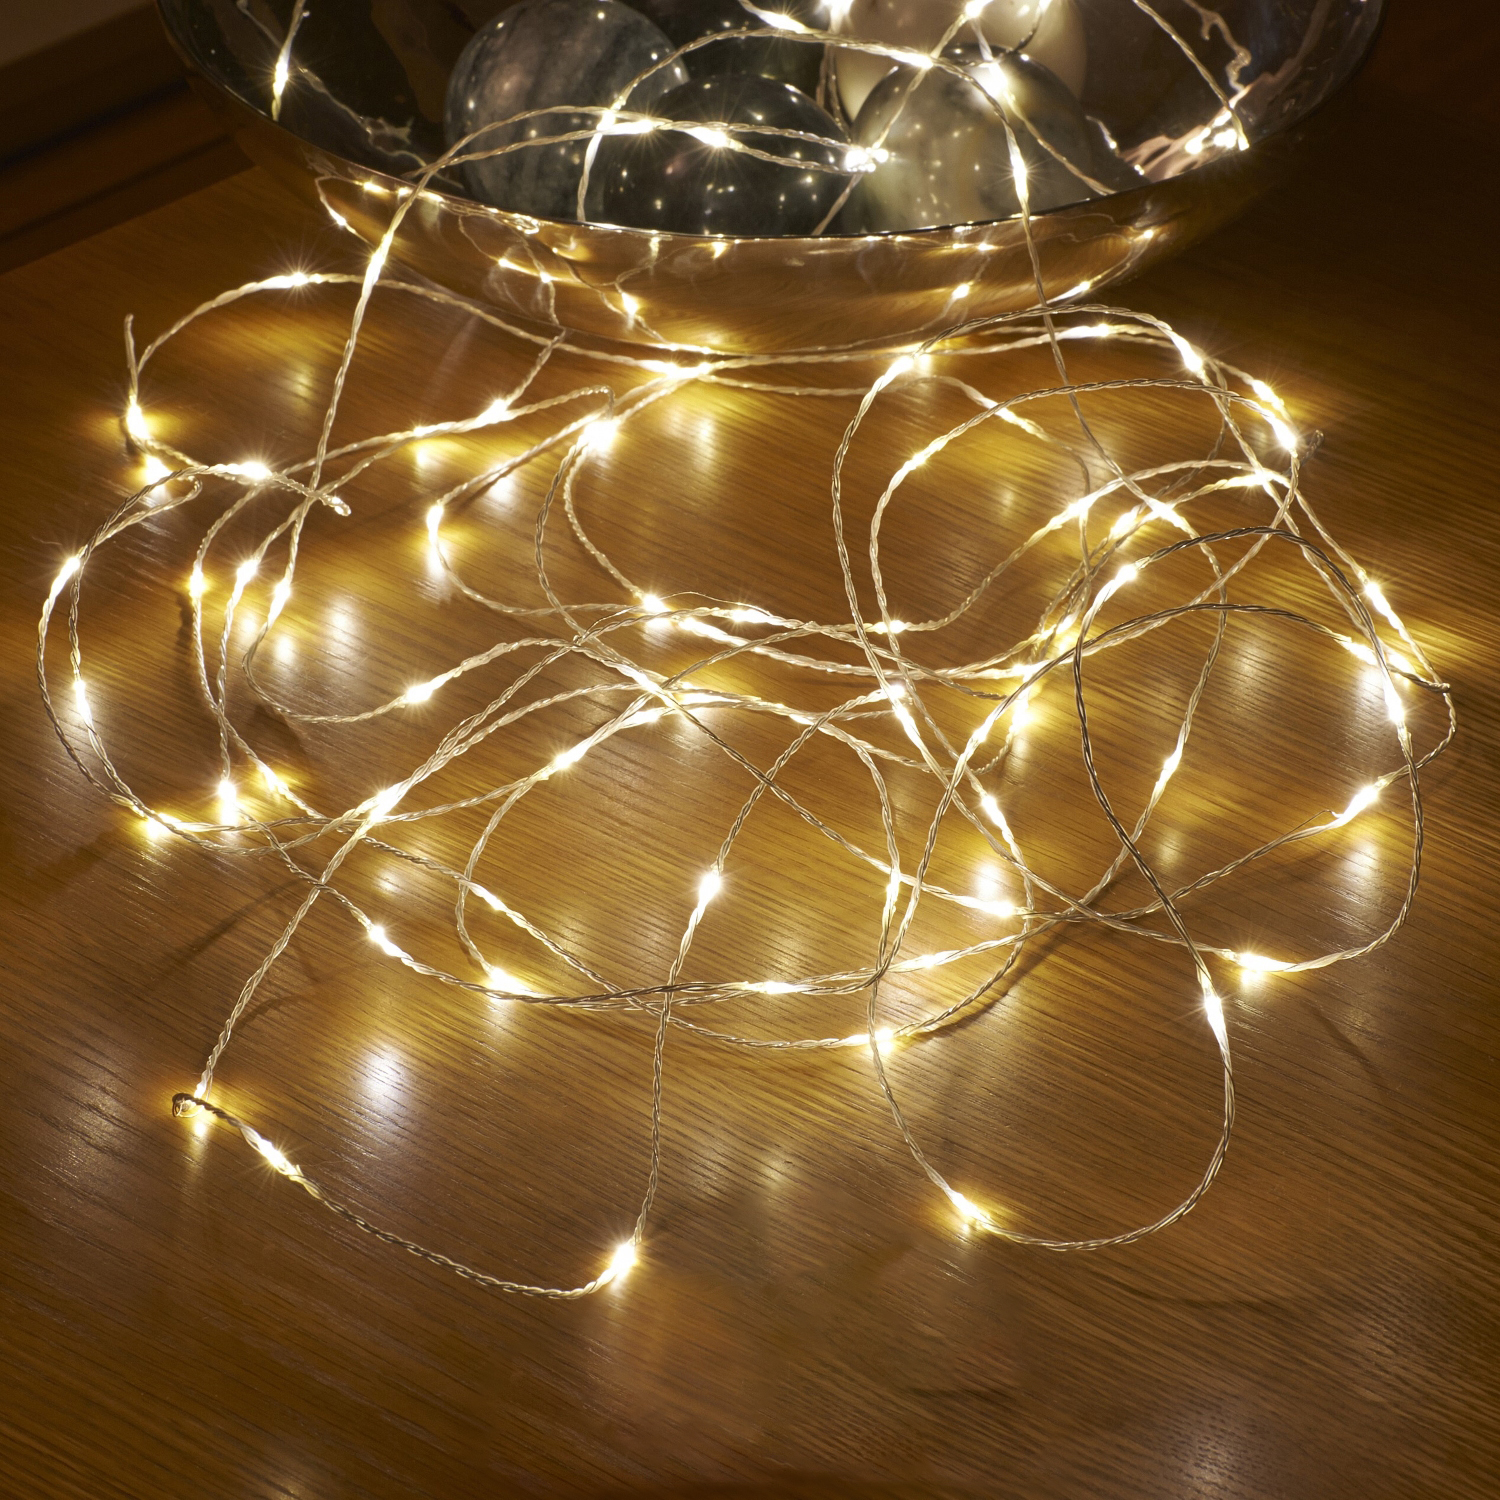 String Led Lights Battery Operated : Micro LED String Lights - Battery Operated - Remote Controlled - Outdoor - 5M - Auraglow LED ...